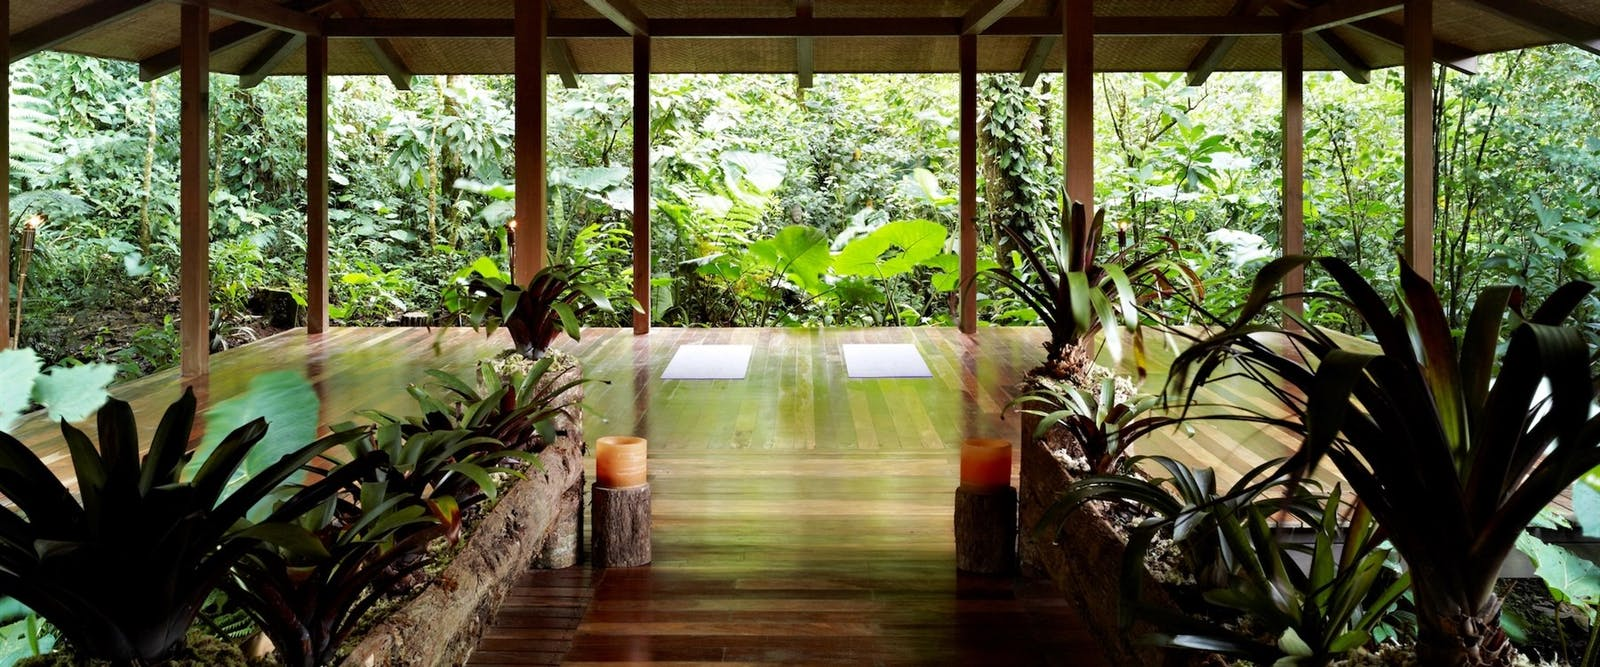 Yoga and spa deck, El Silencio Lodge, Costa Rica